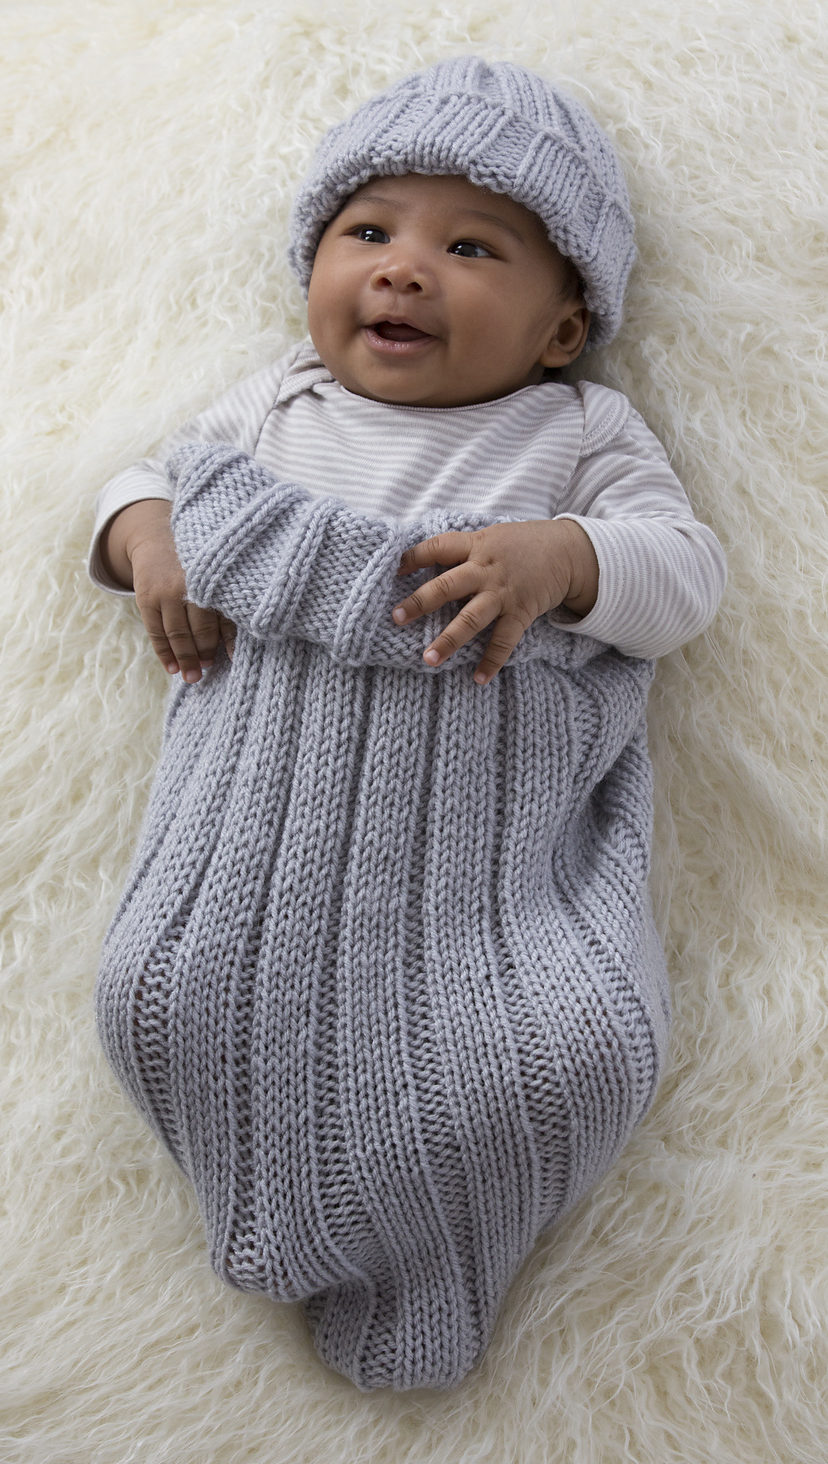 baby knitting patterns free knitting pattern for comfy baby cocoon and cap mdtcrwl